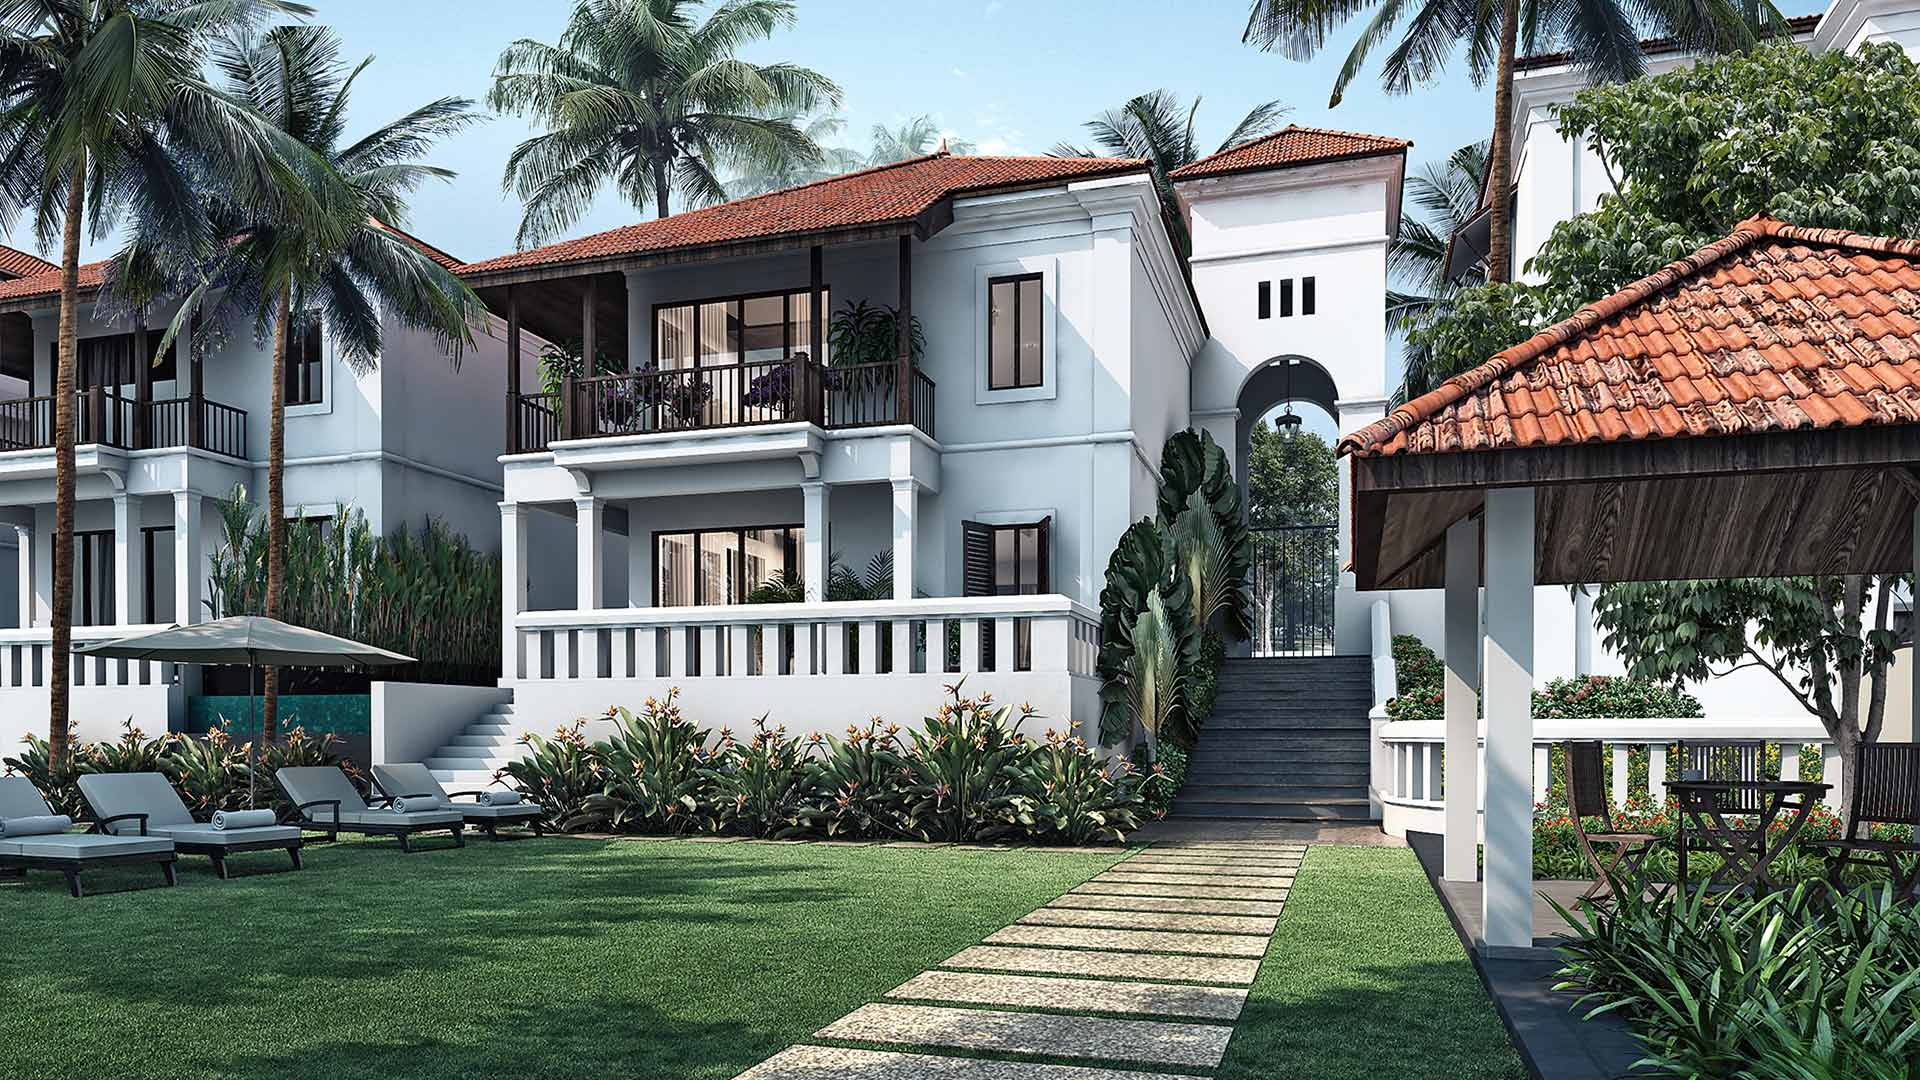 Boutique villas for sale in Goa